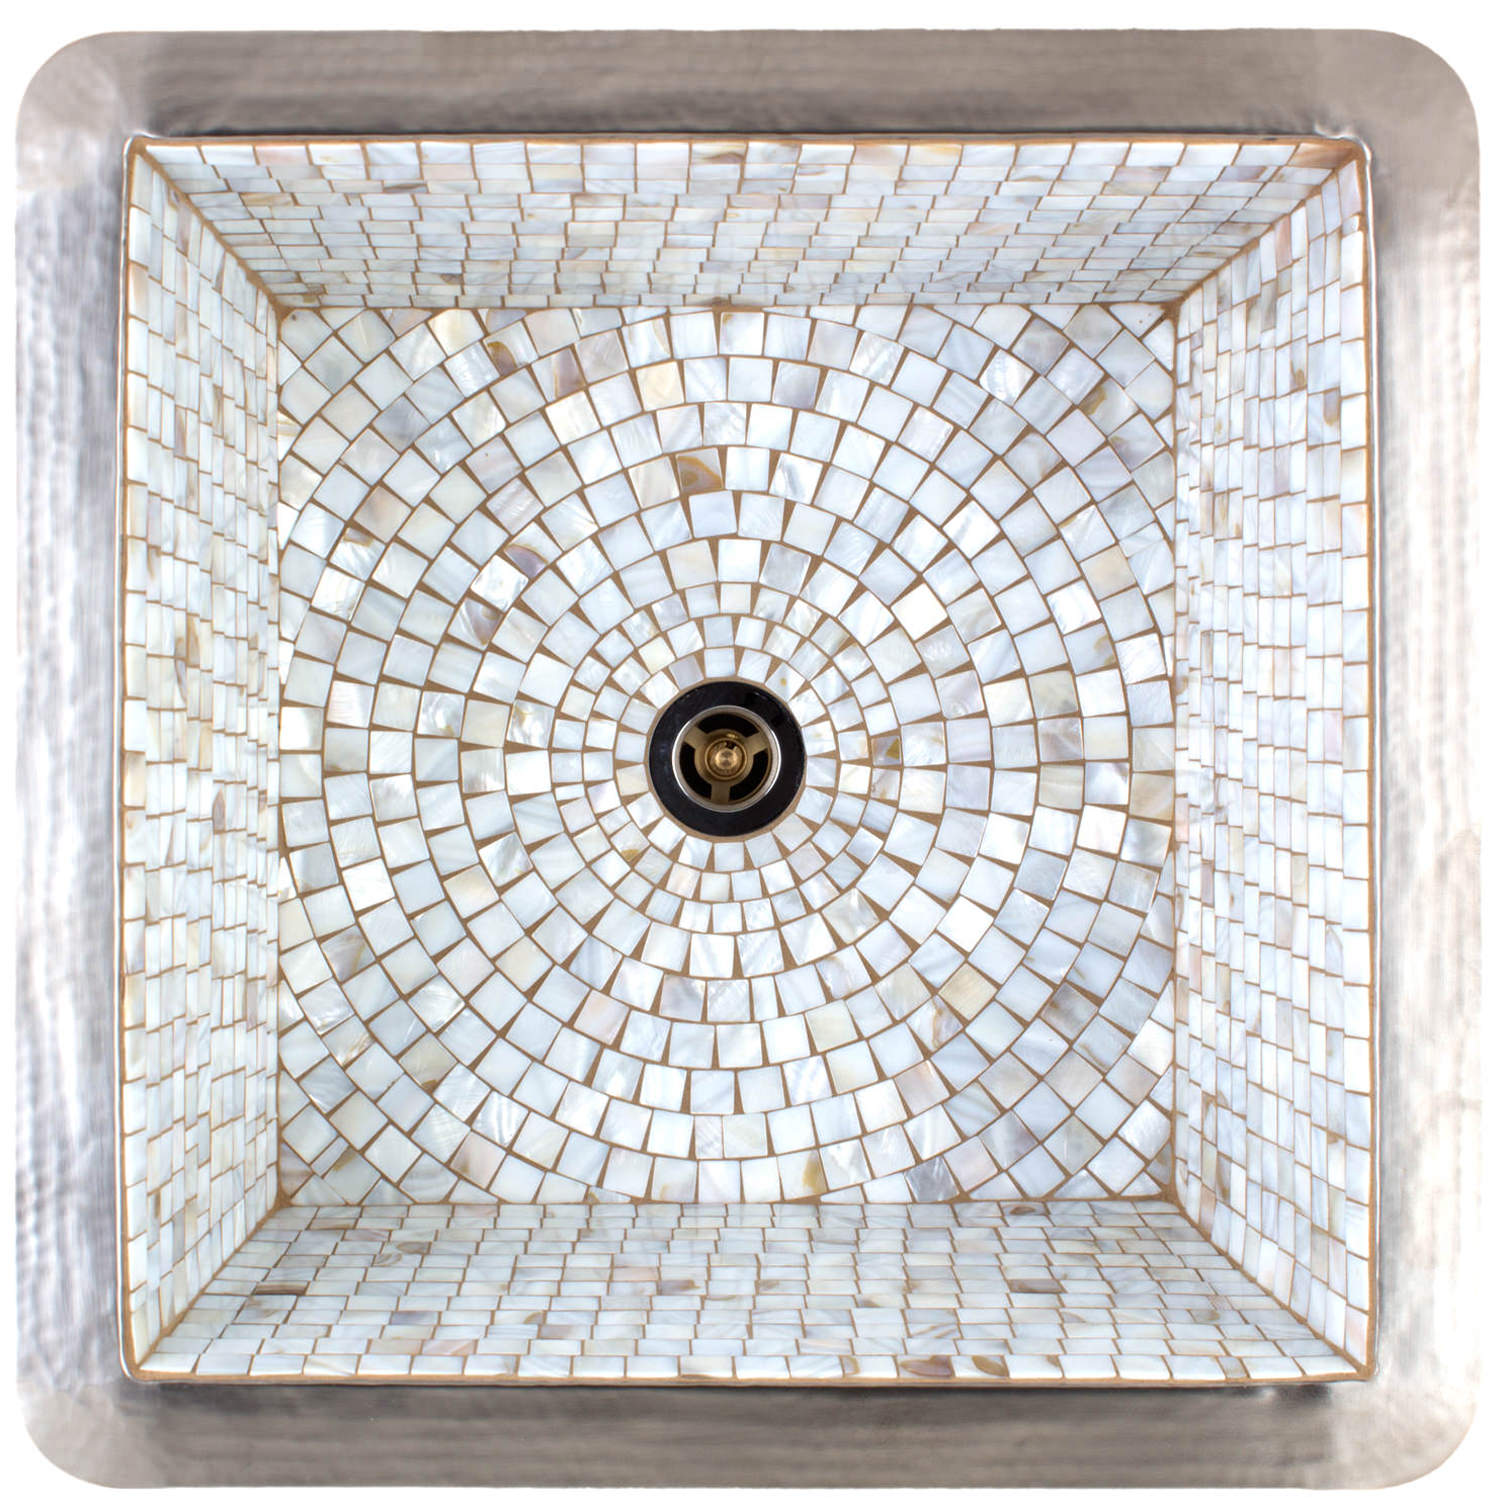 "Linkasink Bar Sinks - V008-MOP Square Copper & Mosaic Tile Sink 16 x 16 x 8 - 1.5 to 3.5"" drain"